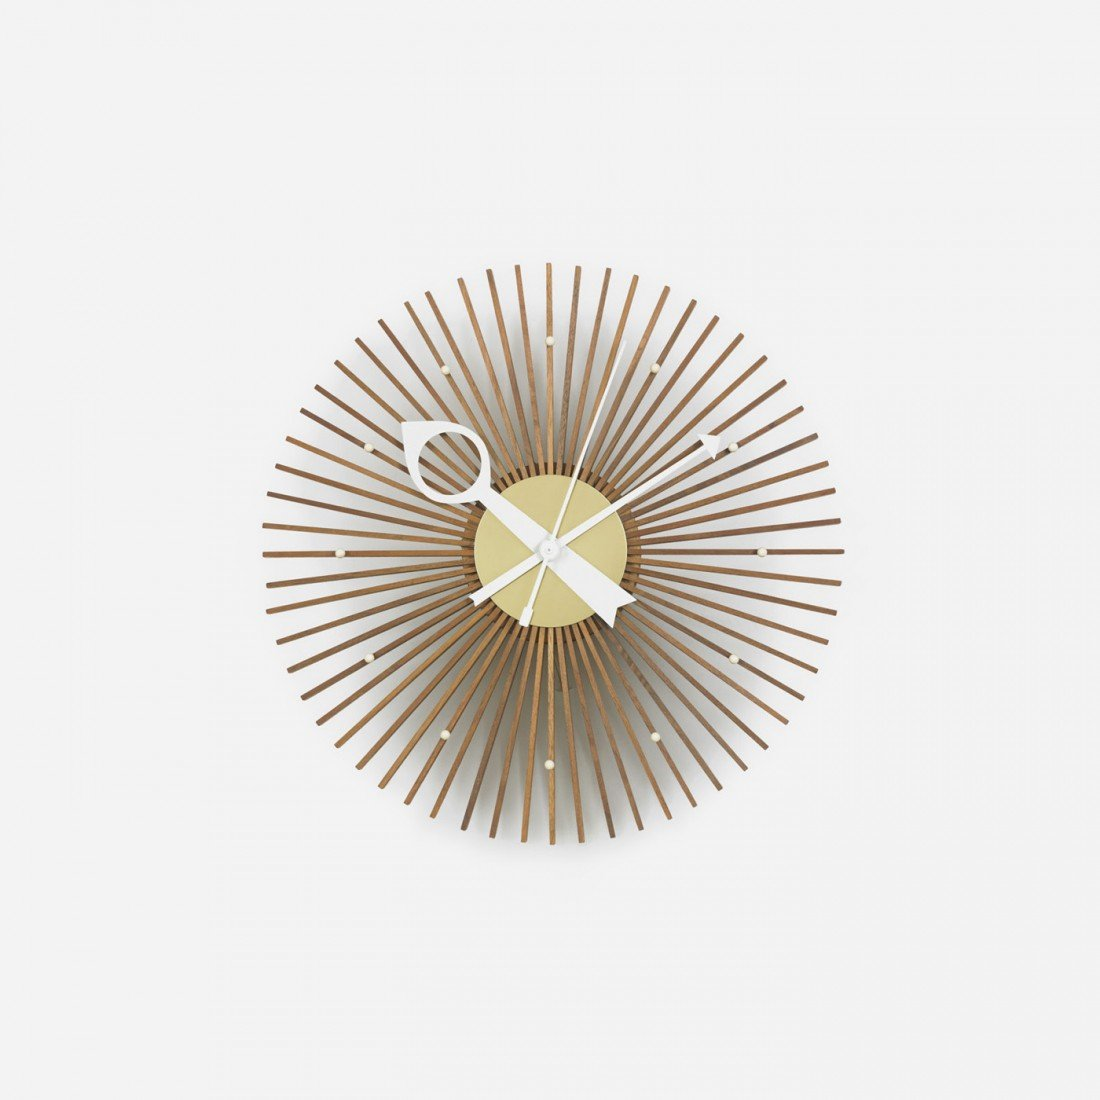 107: George Nelson & Associates Popsicle wall clock